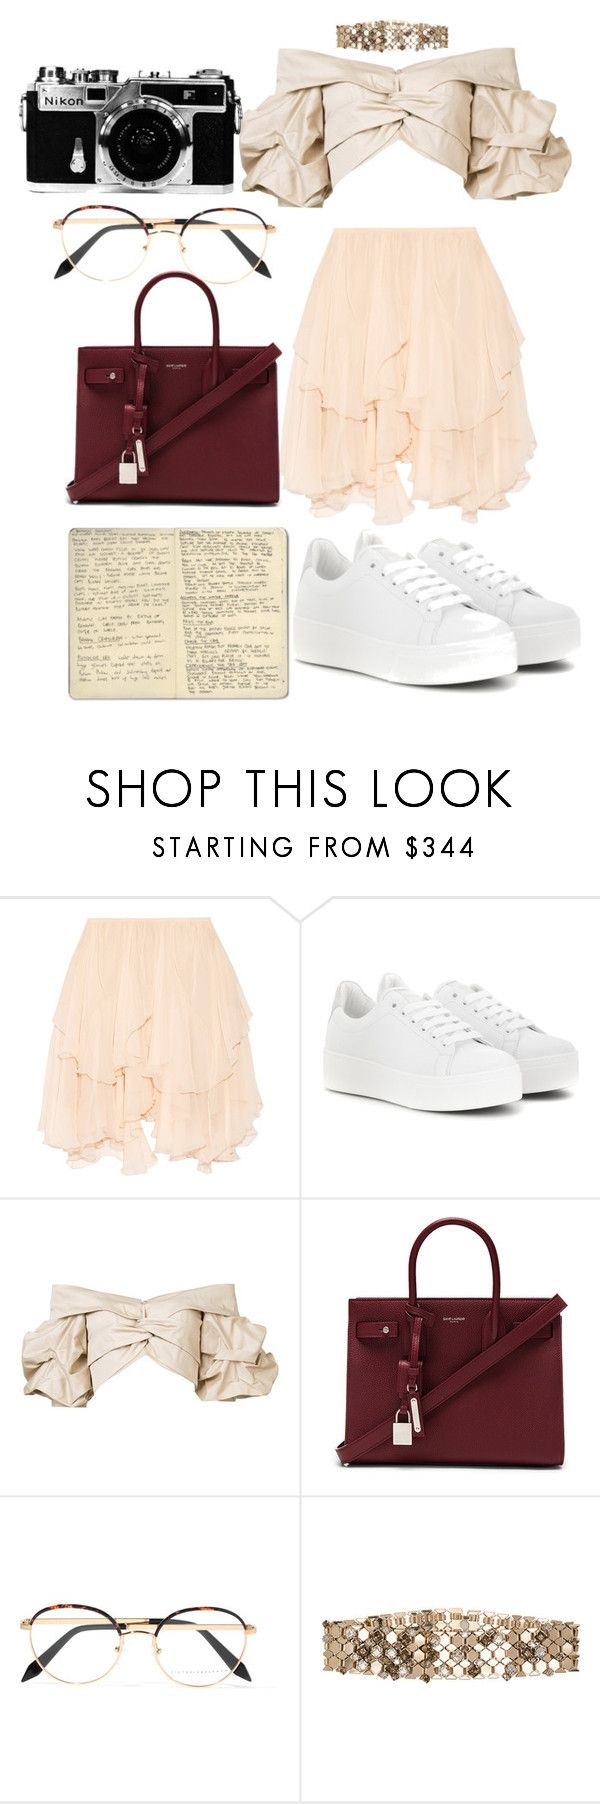 """Untitled #905"" by veronice-lopez ❤ liked on Polyvore featuring Chloé, Kenzo, Johanna Ortiz, Yves Saint Laurent, Victoria Beckham, Moleskine, Lanvin and Nikon"